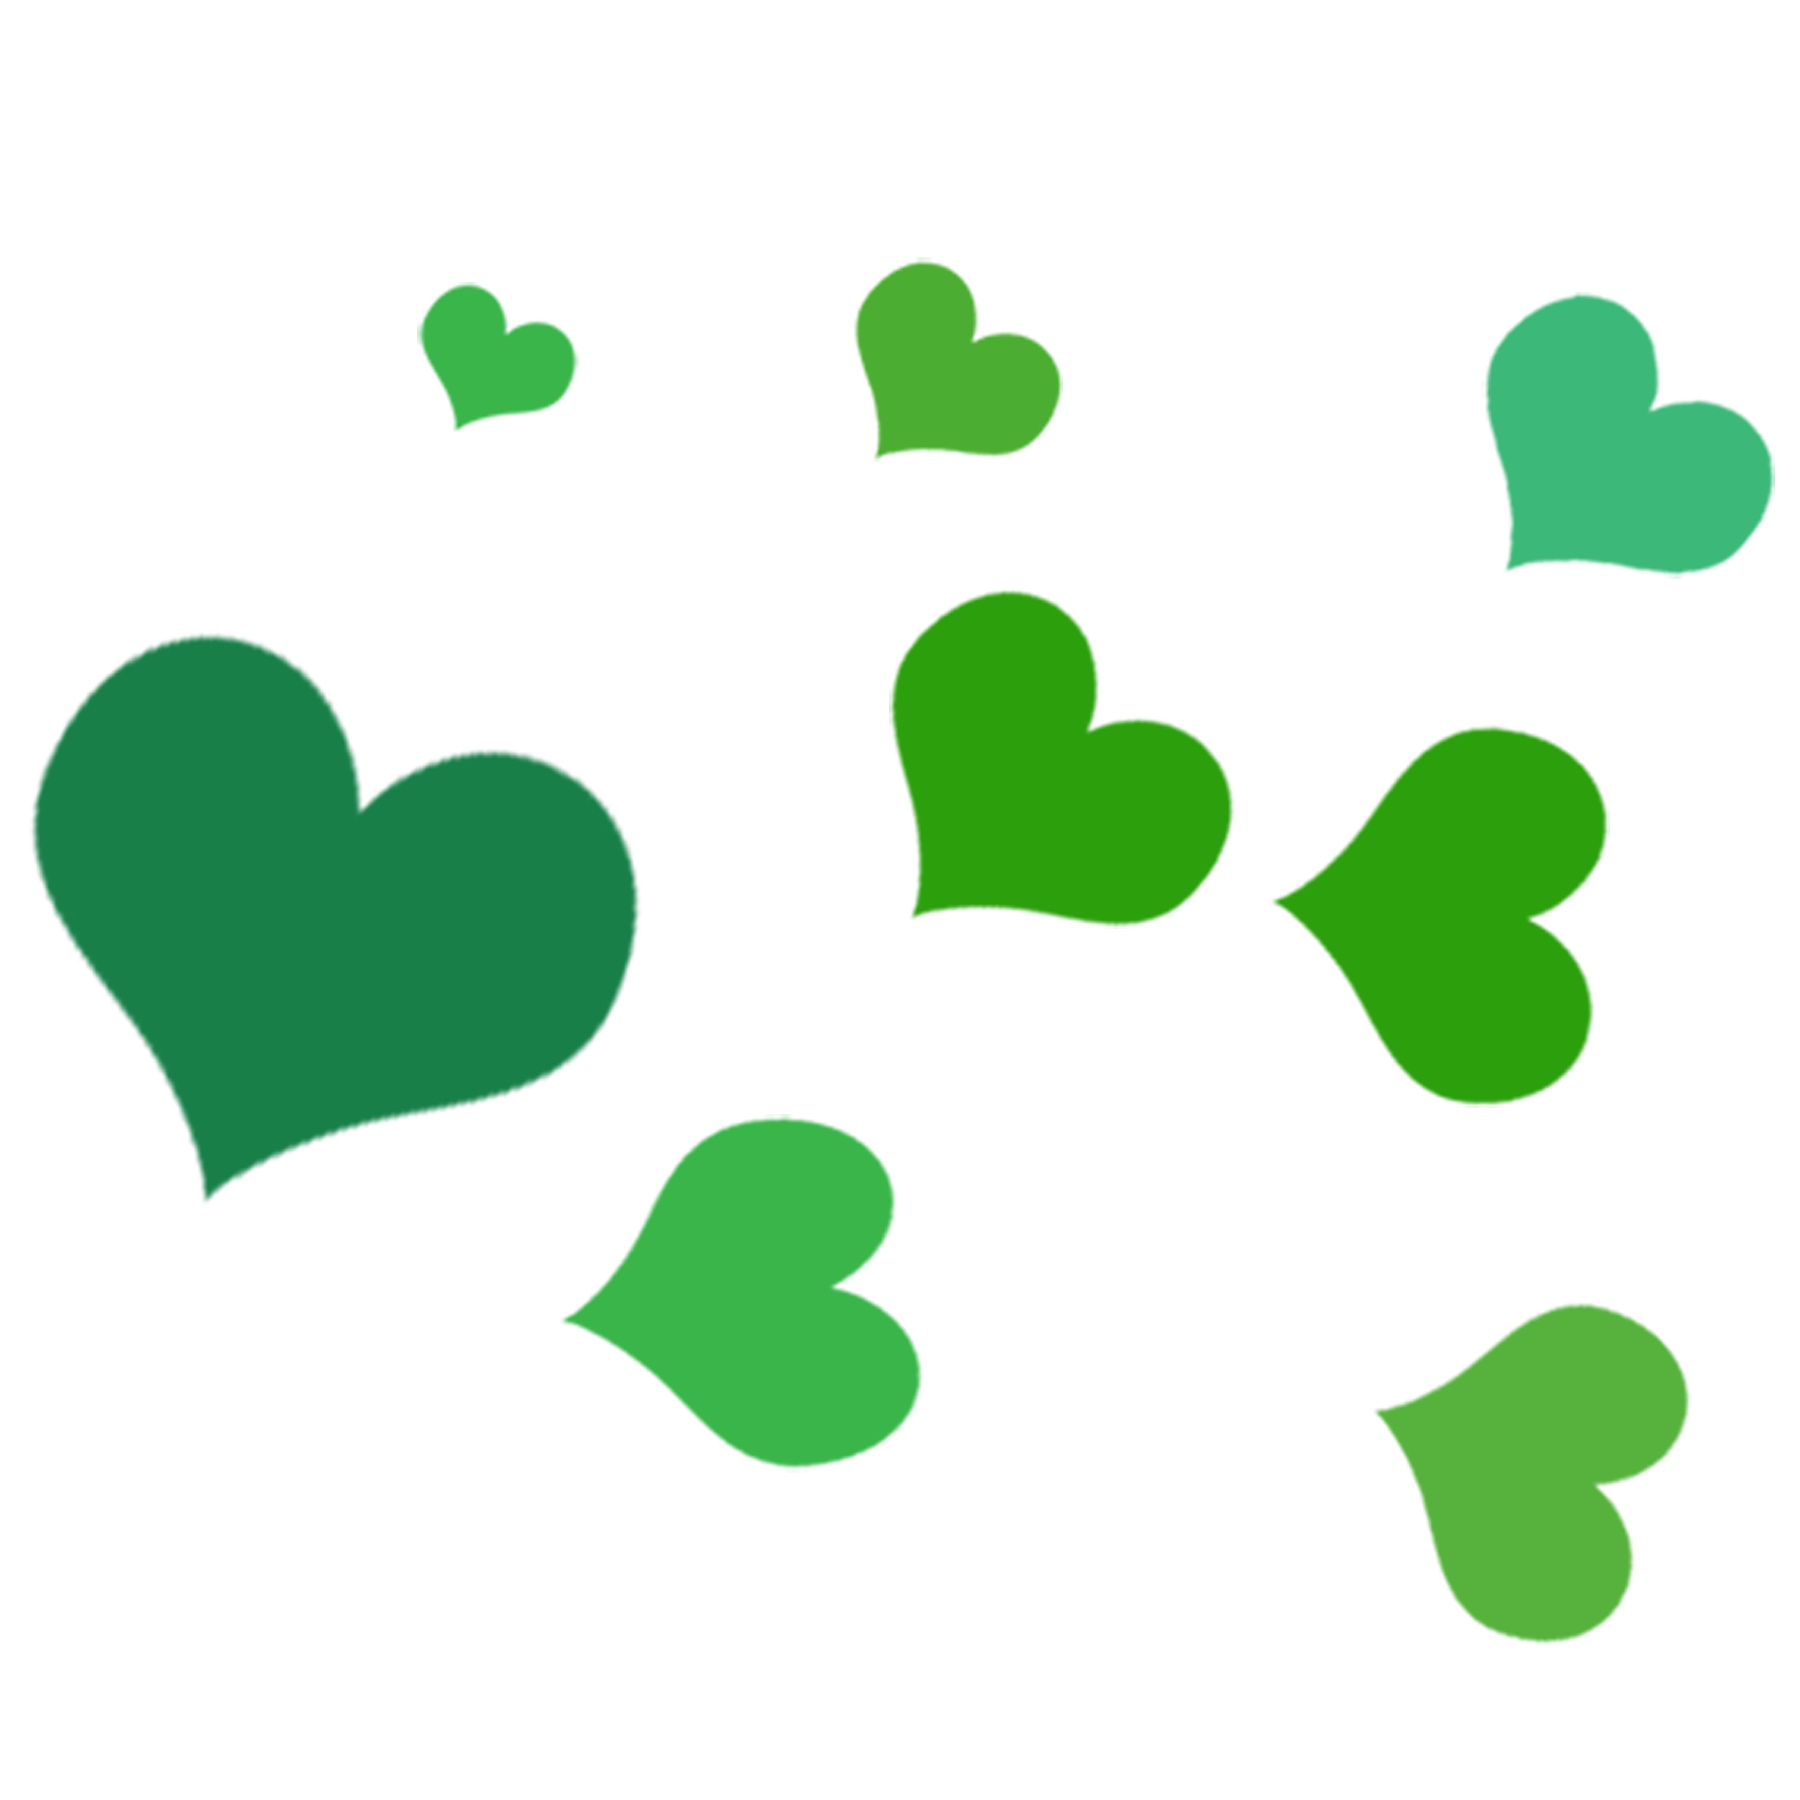 leaf heart clipart 10 free Cliparts   Download images on ...